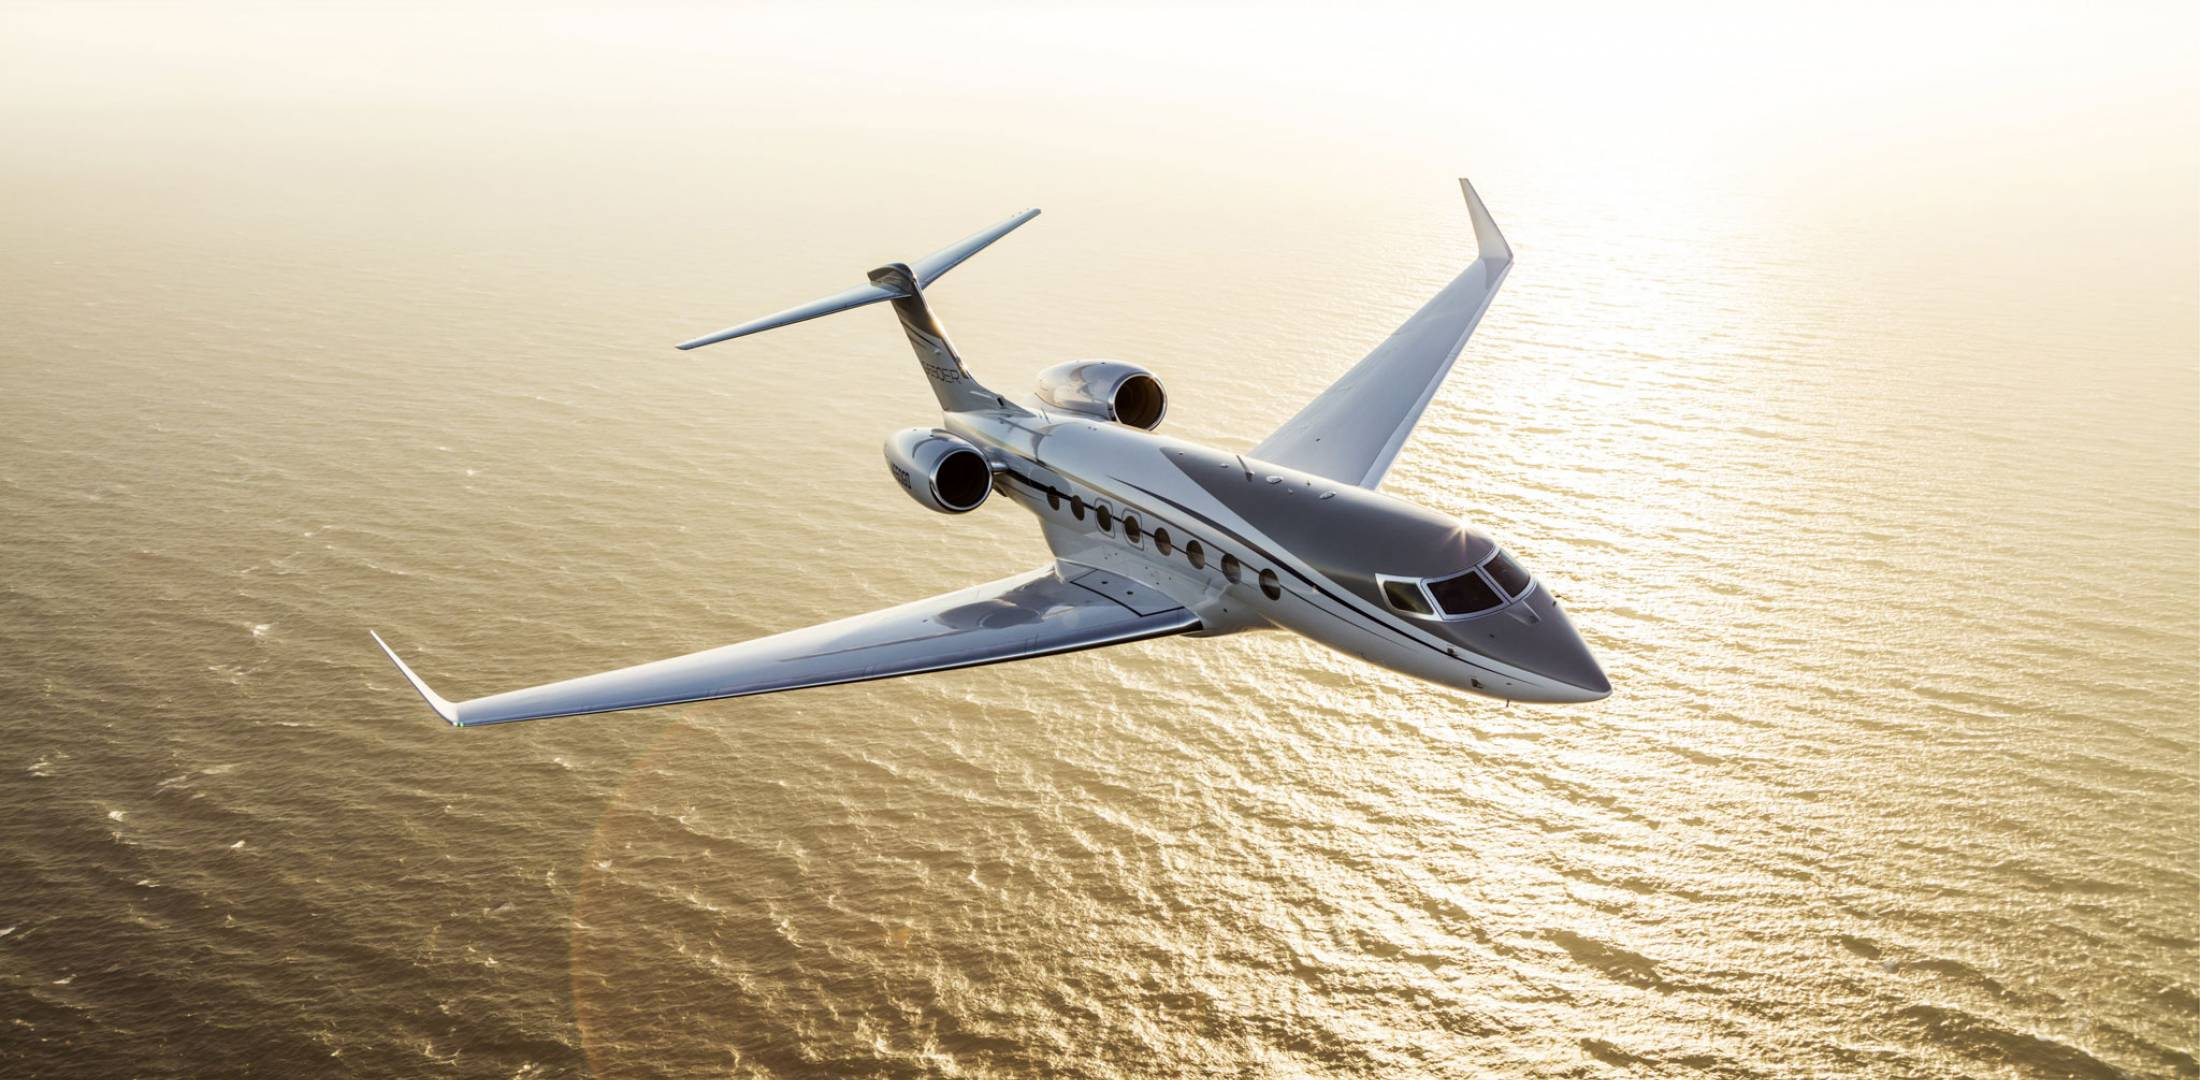 Gulfstream G650 in flight